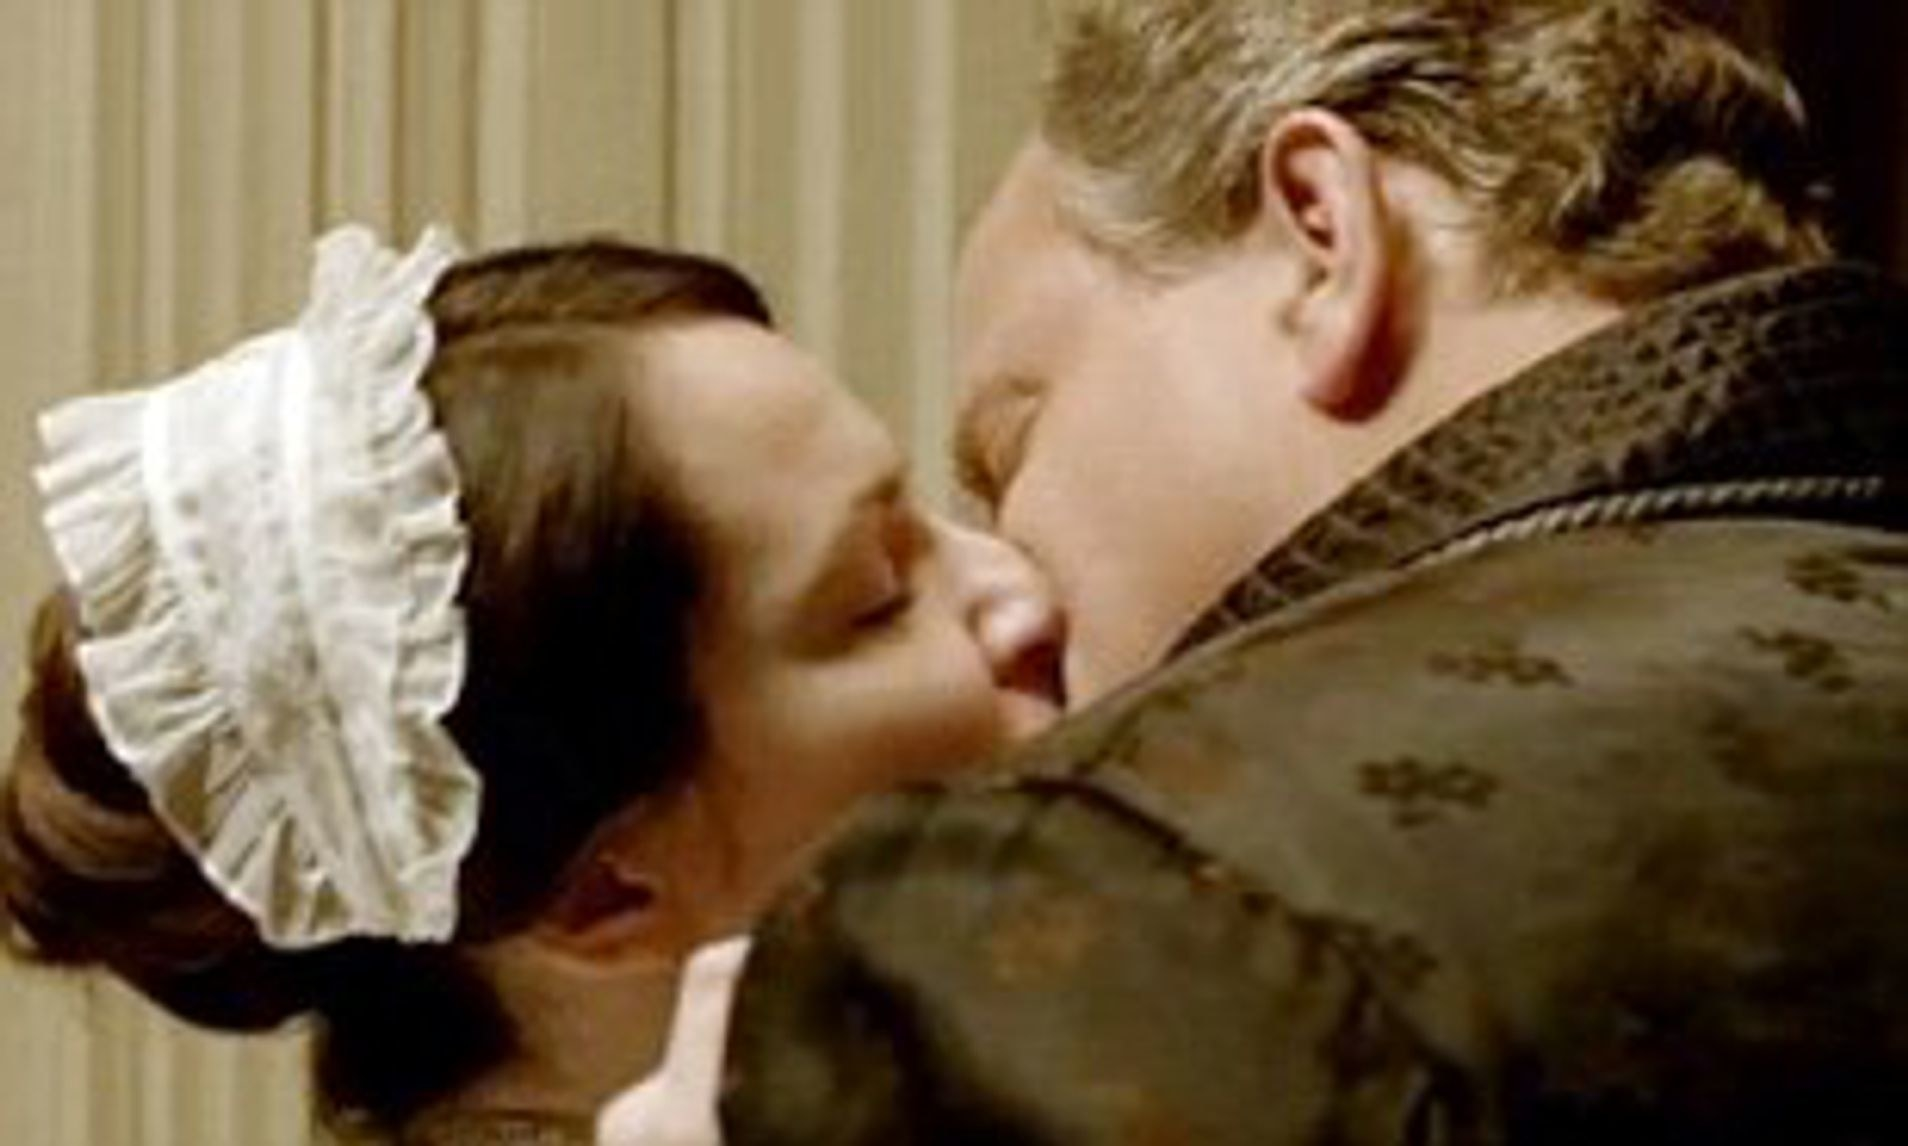 Robert cheats on Cora with the maid